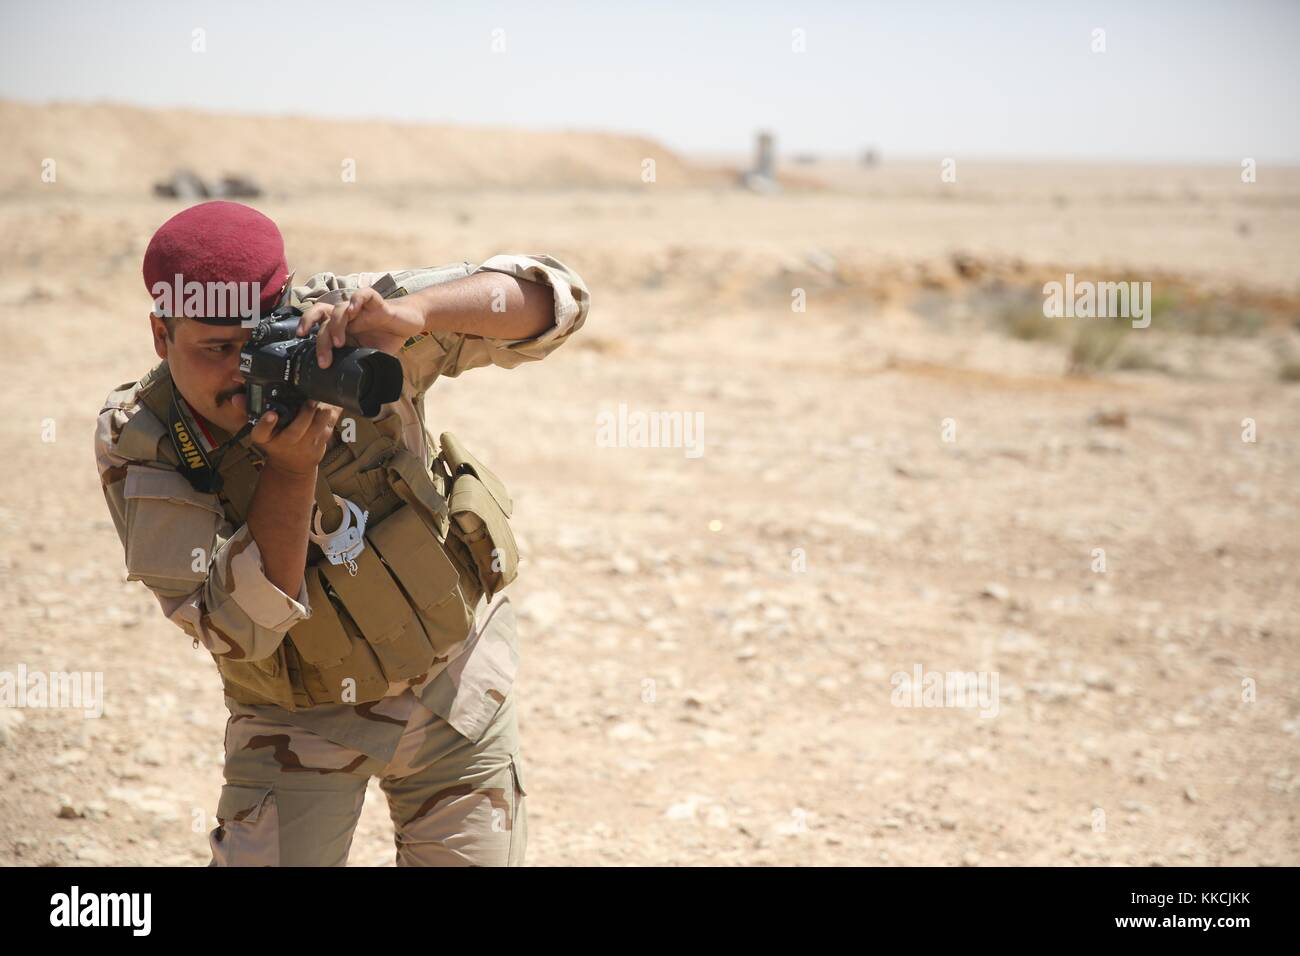 An Iraqi security forces soldier practices using his camera during media cell training at Al Asad Air Base, Iraq. - Stock Image